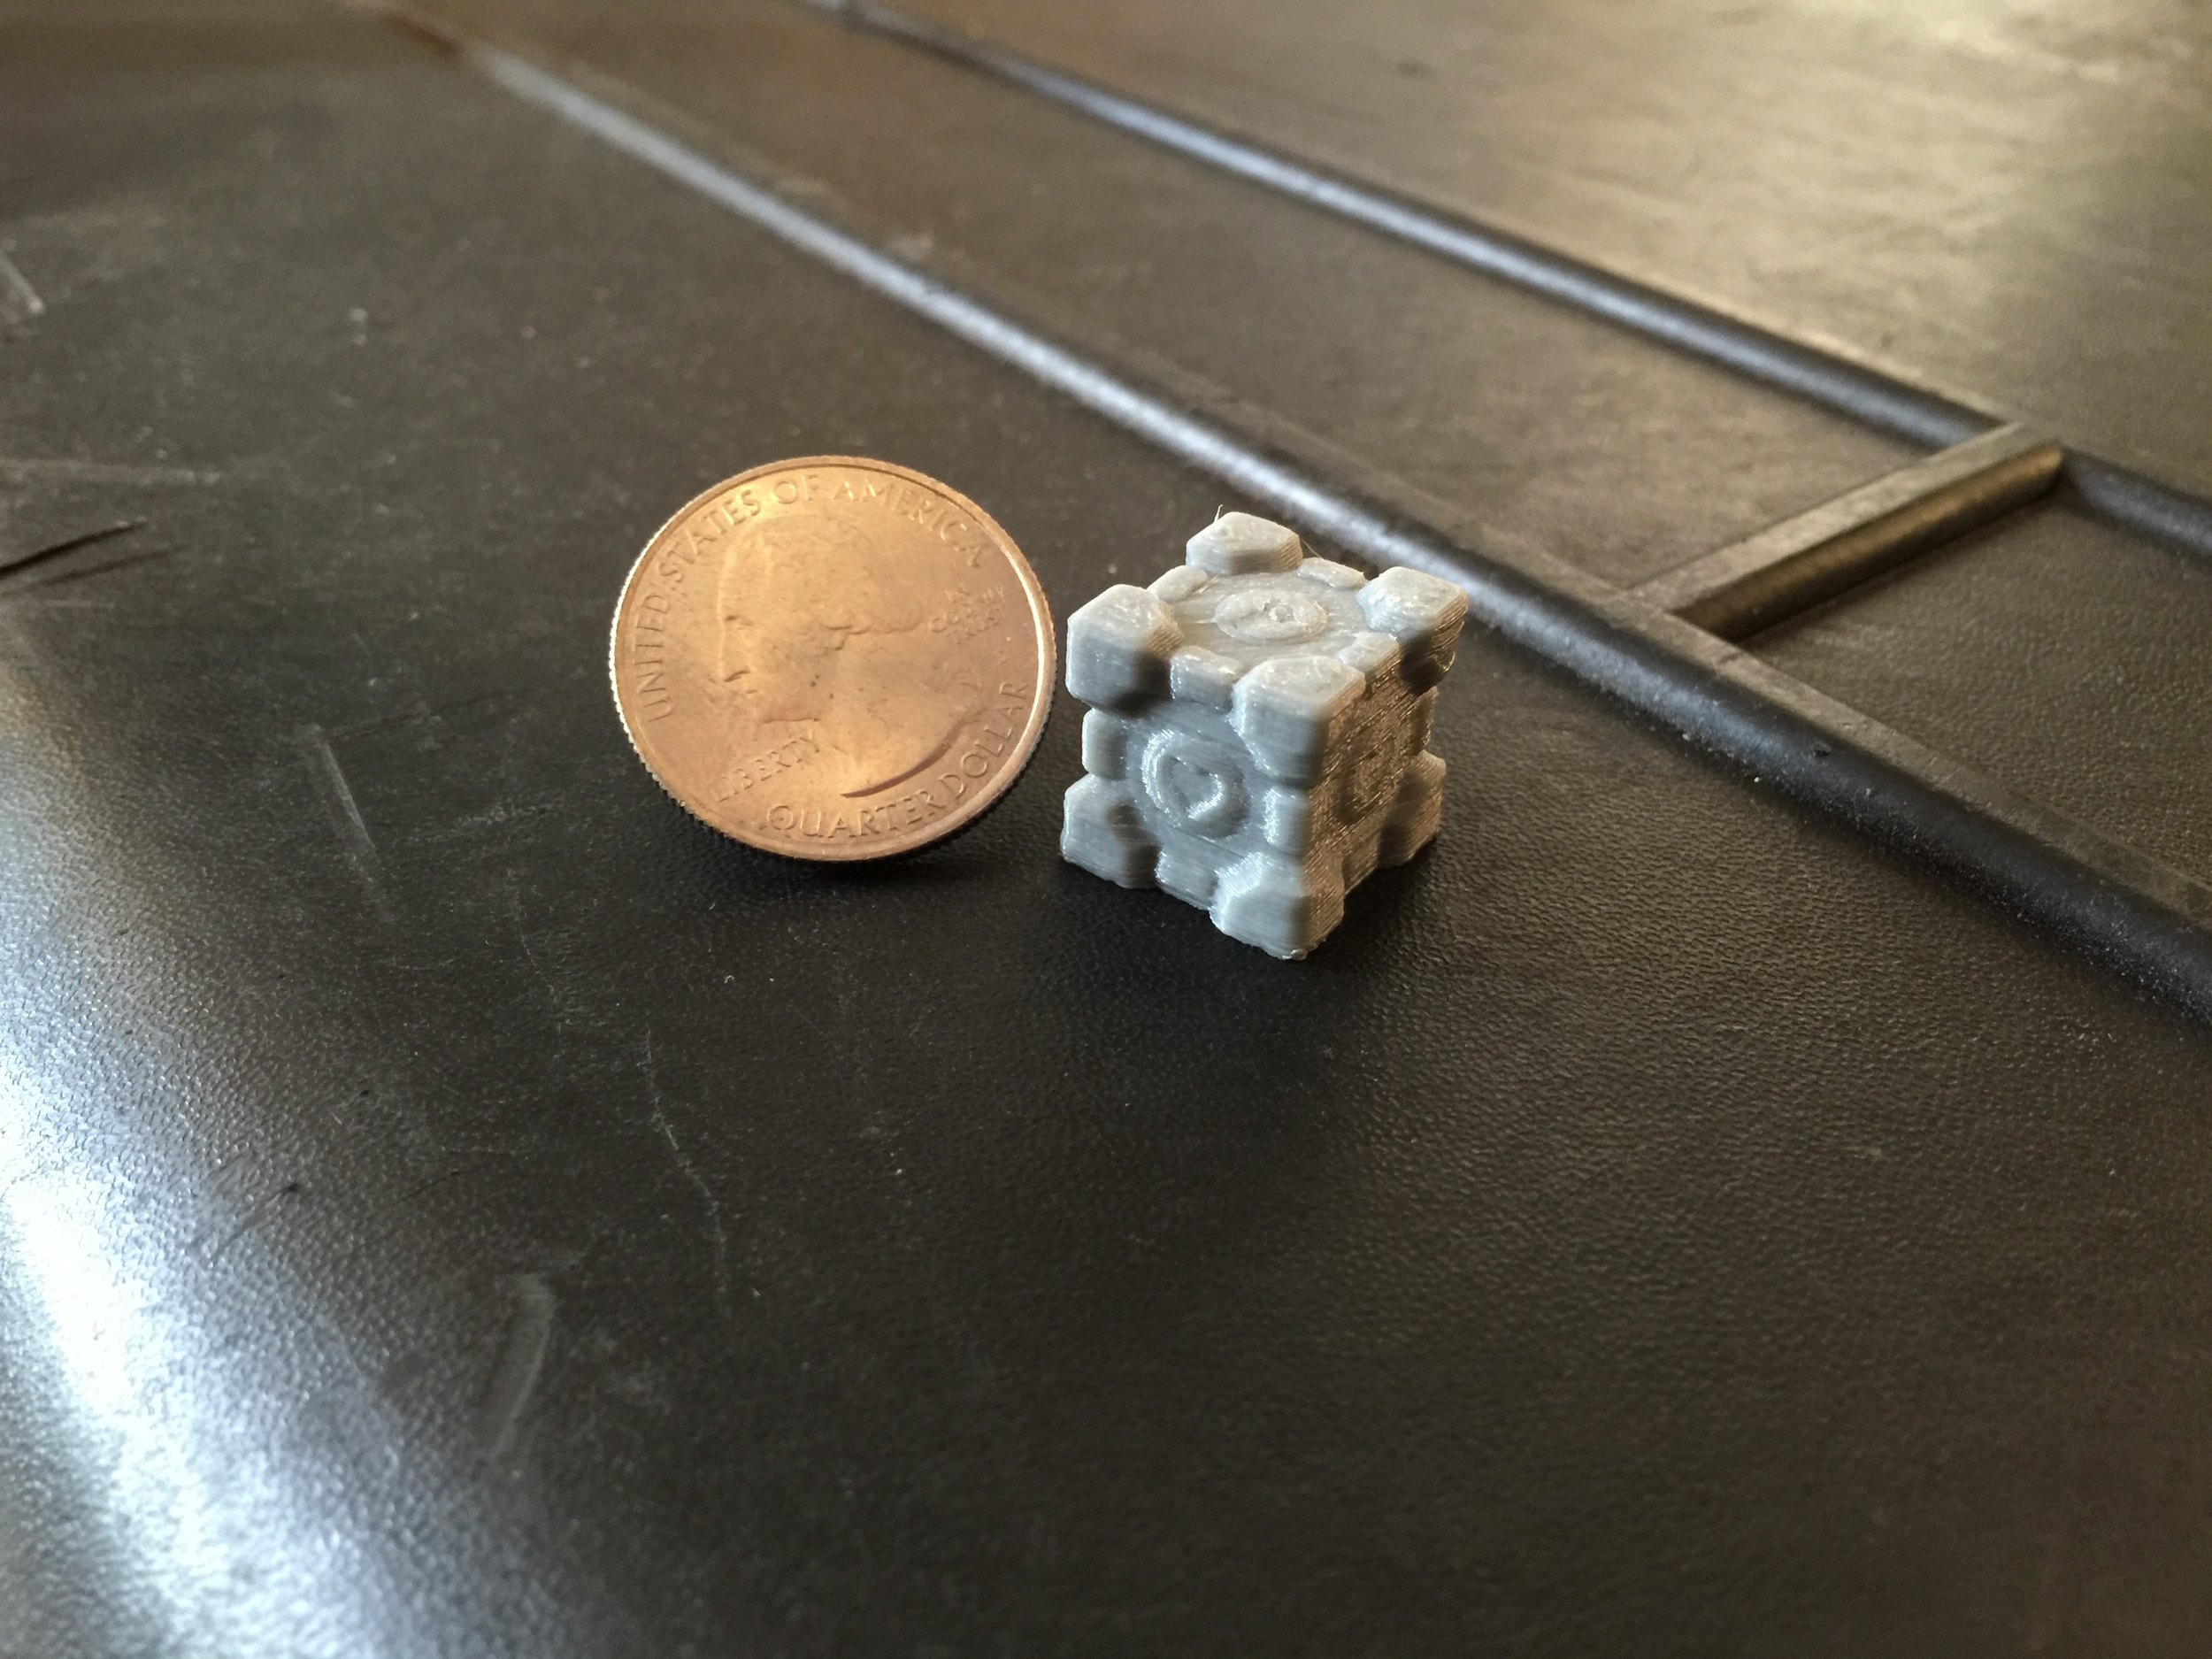 The heart on the side of the gray cube printed clearly but the heart on top is muddled due to the nozzle's relatively large diameter for features perpendicular to the nozzle